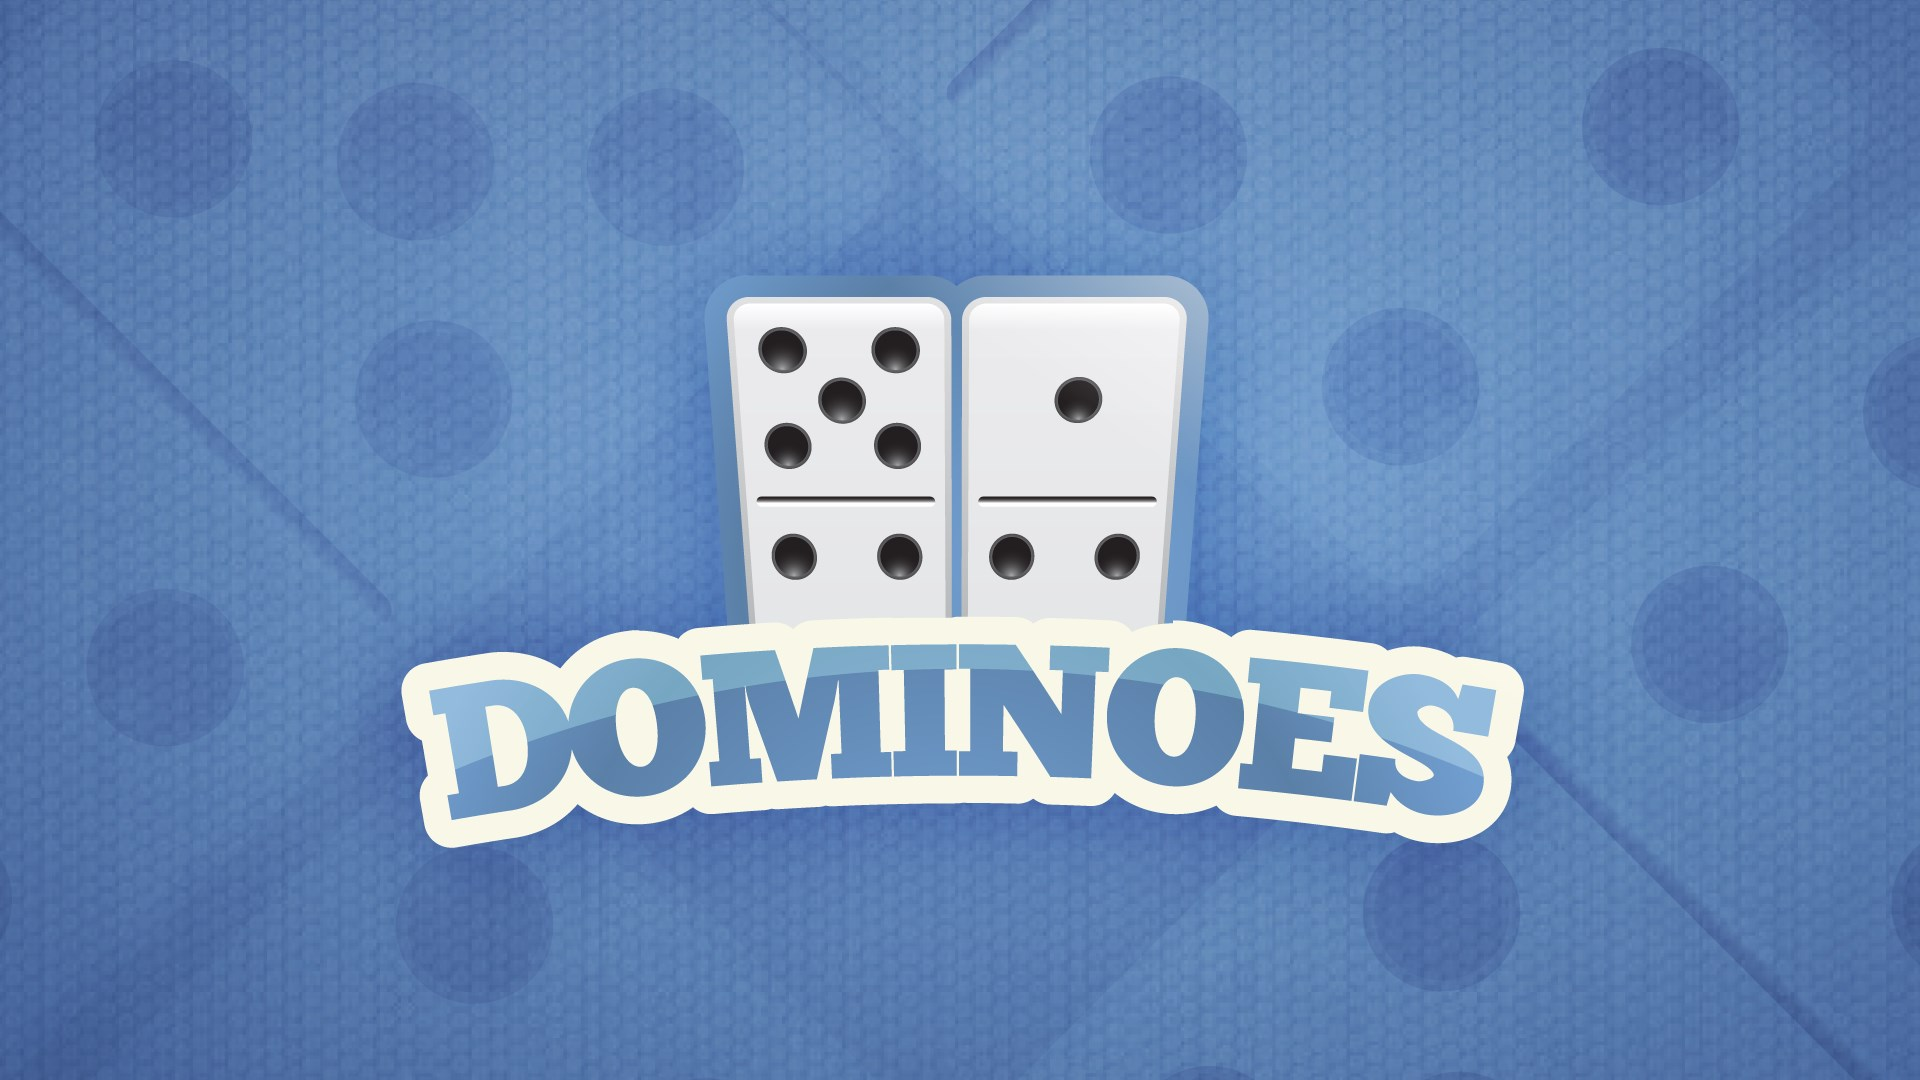 free download dominoes game for windows 7